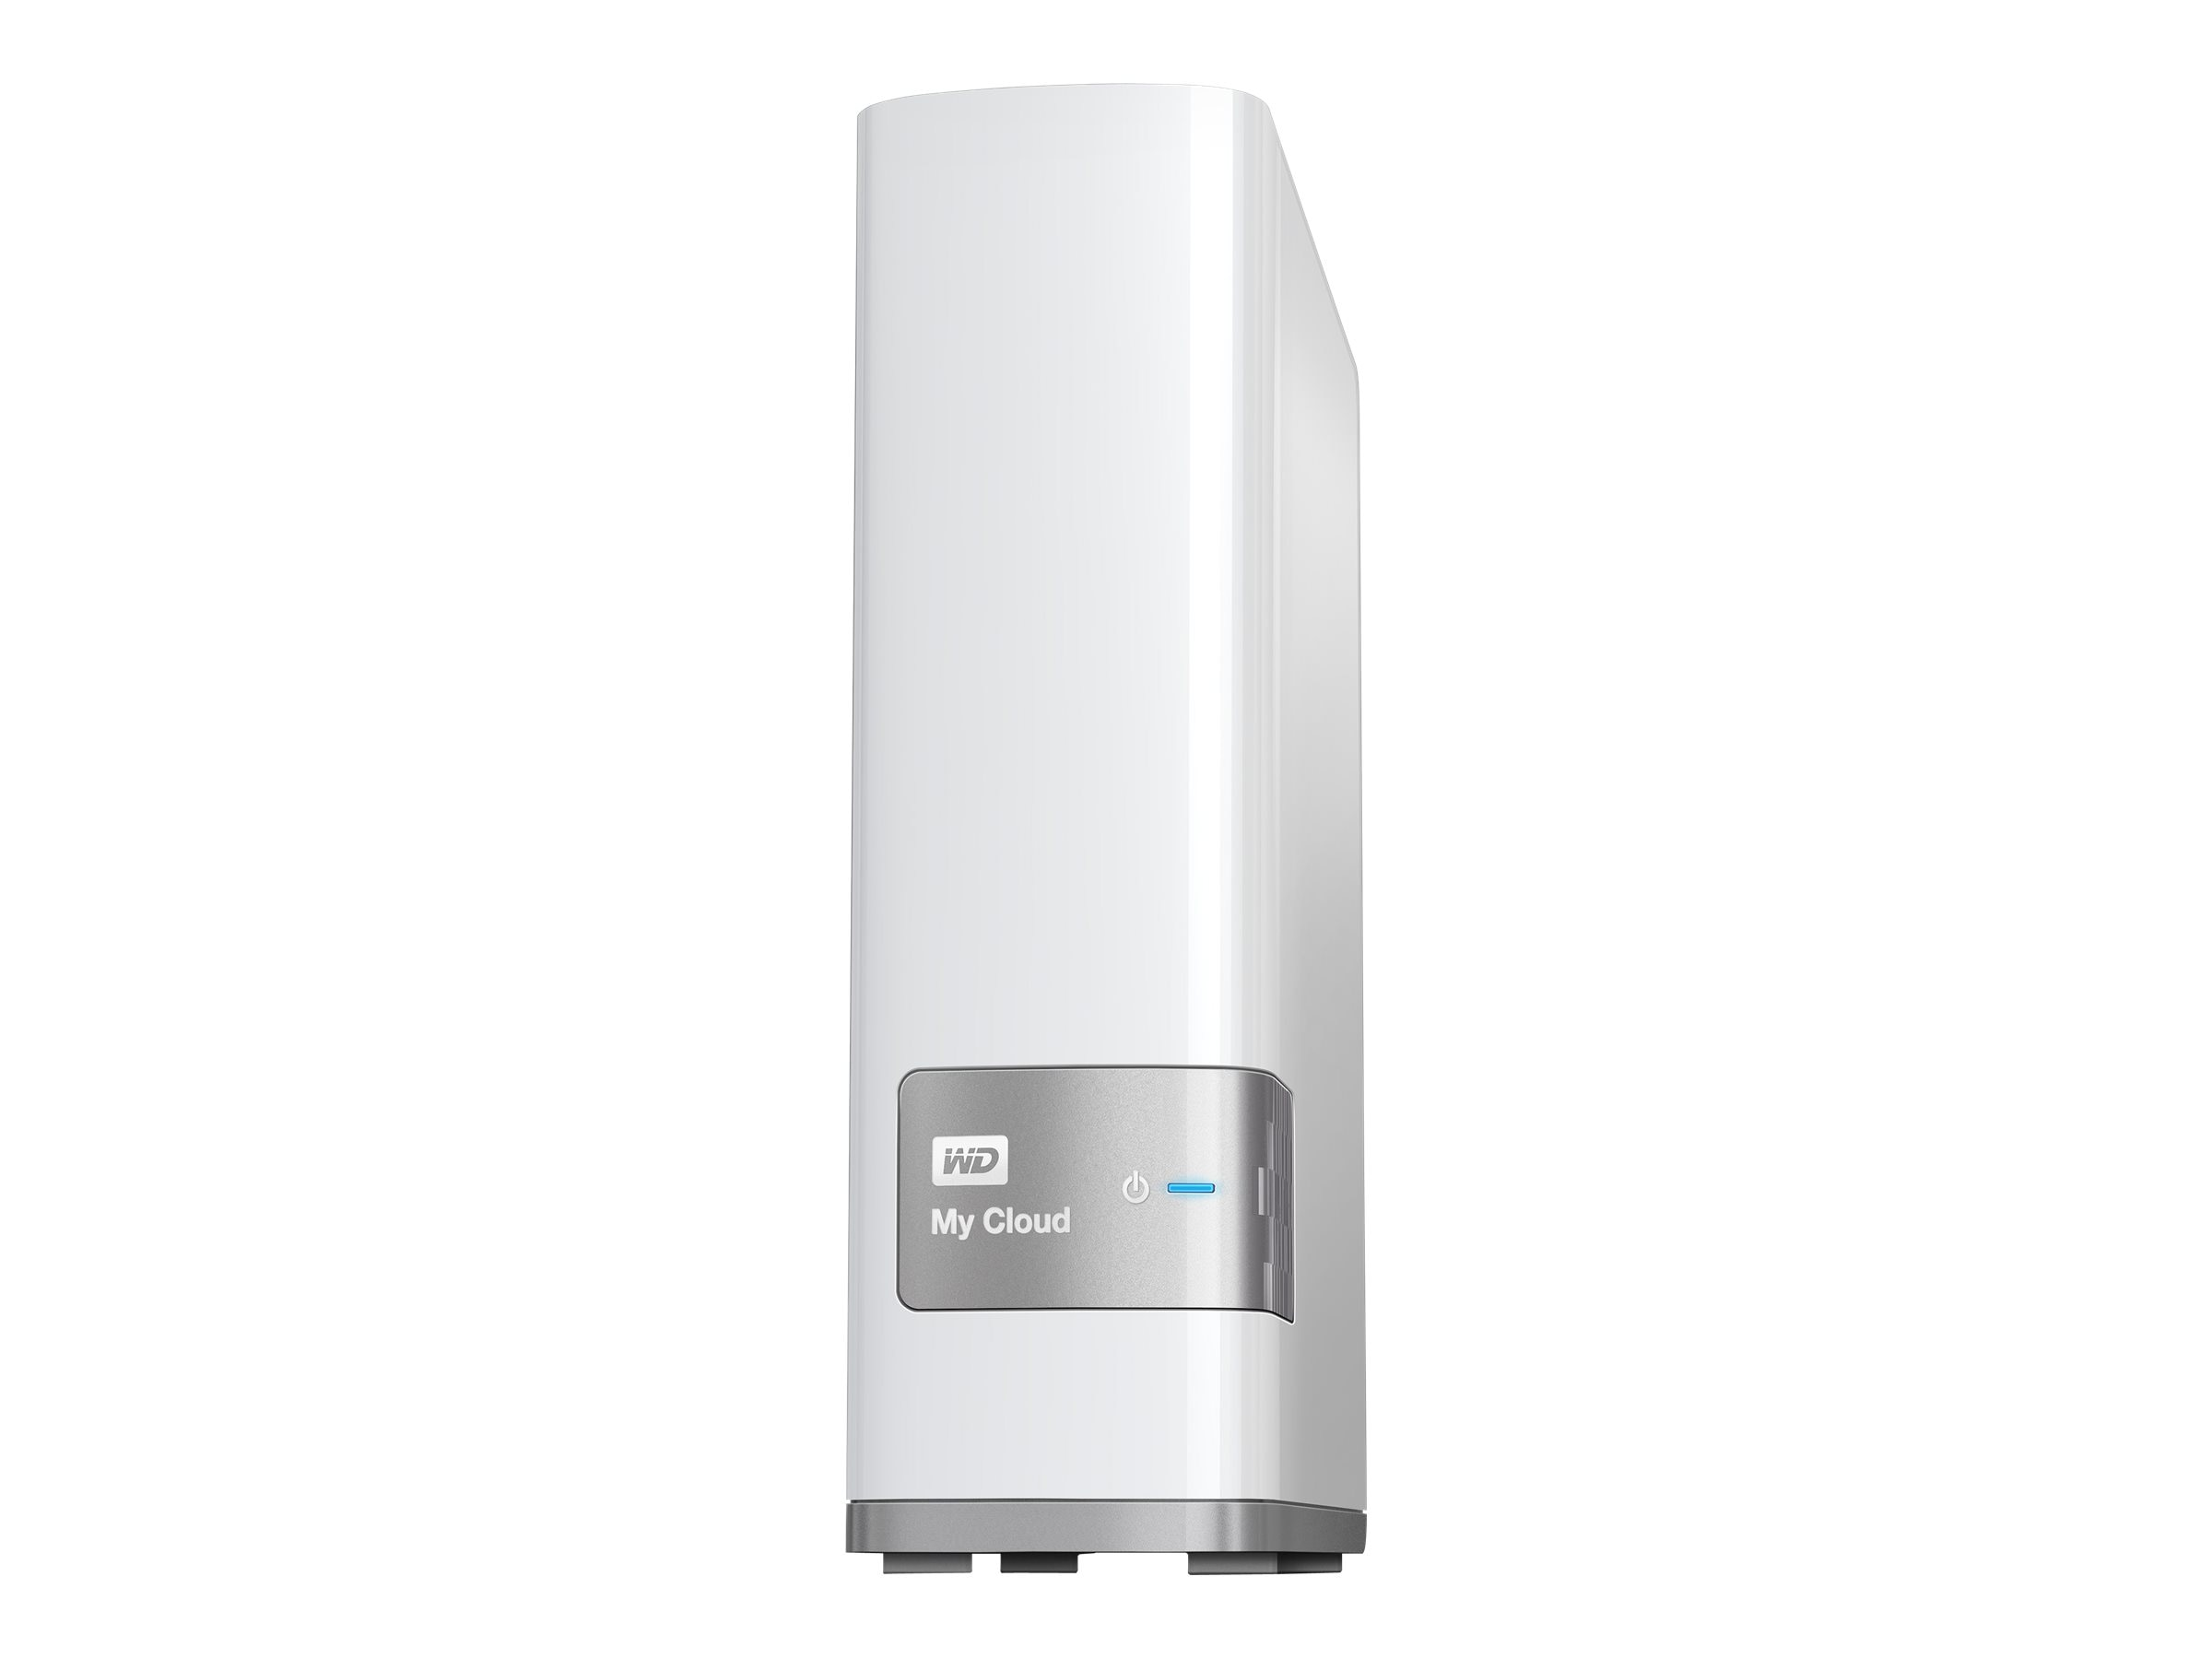 WD WD 3TB My Cloud Personal Cloud Storage, NAS, WDBCTL0030HWT-NESN, 16259877, Network Attached Storage